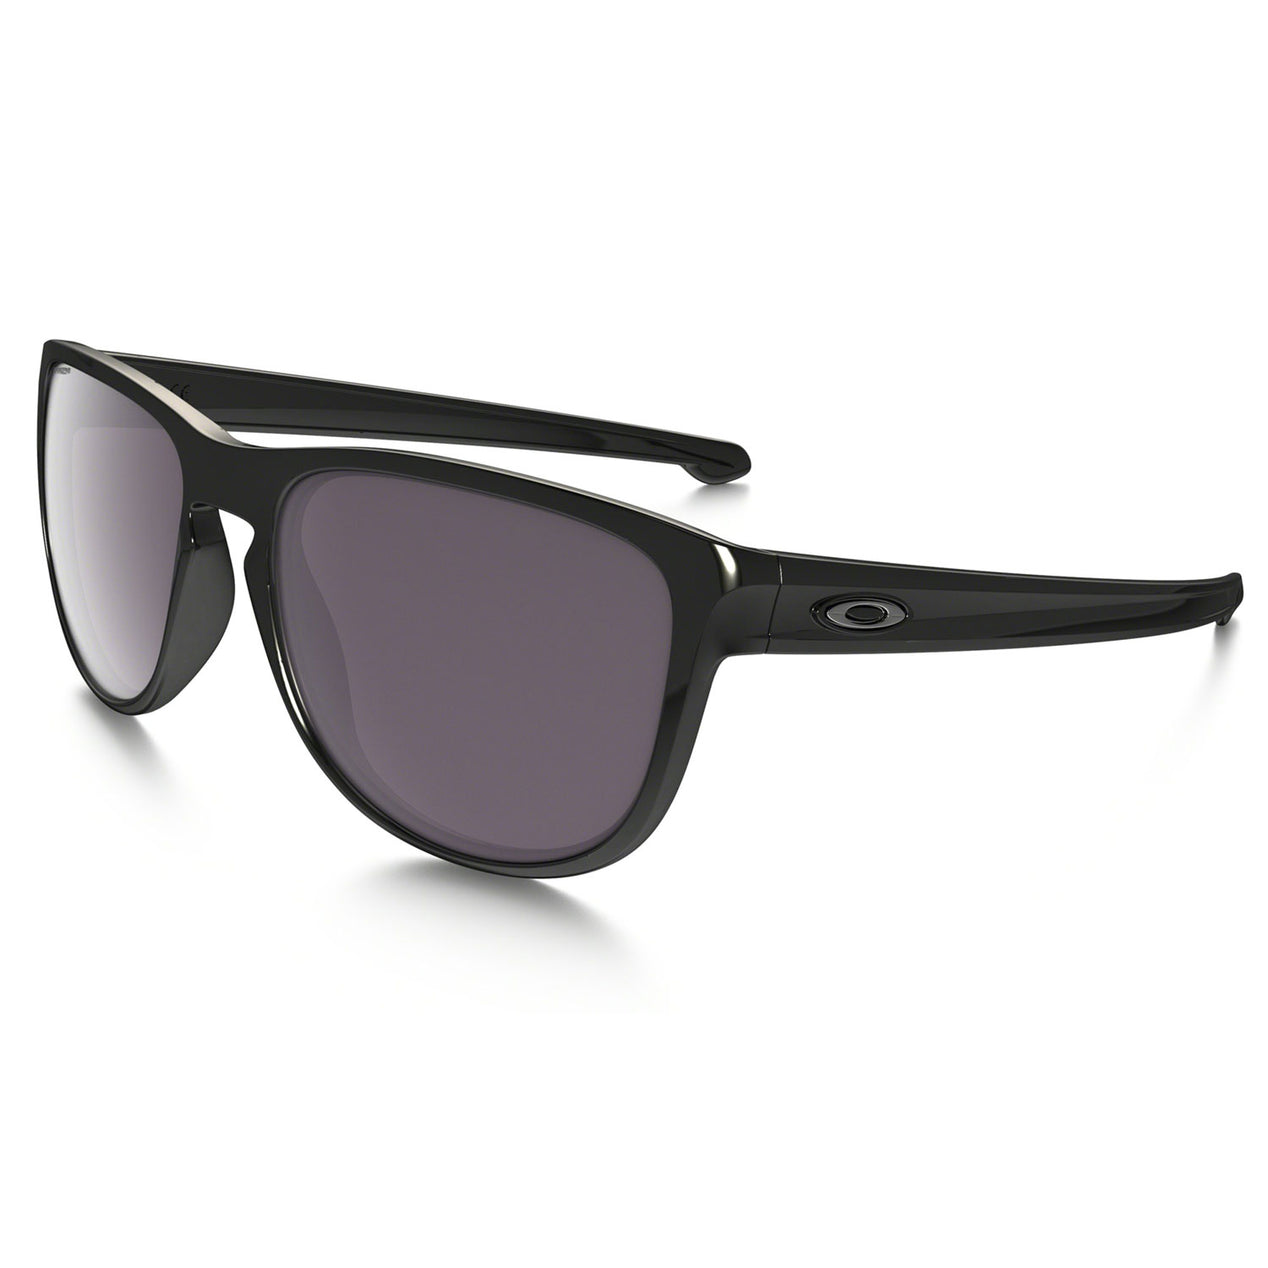 8b004d428c Oakley Sliver R Polished Black With Prizm Daily Polarized Lens ...